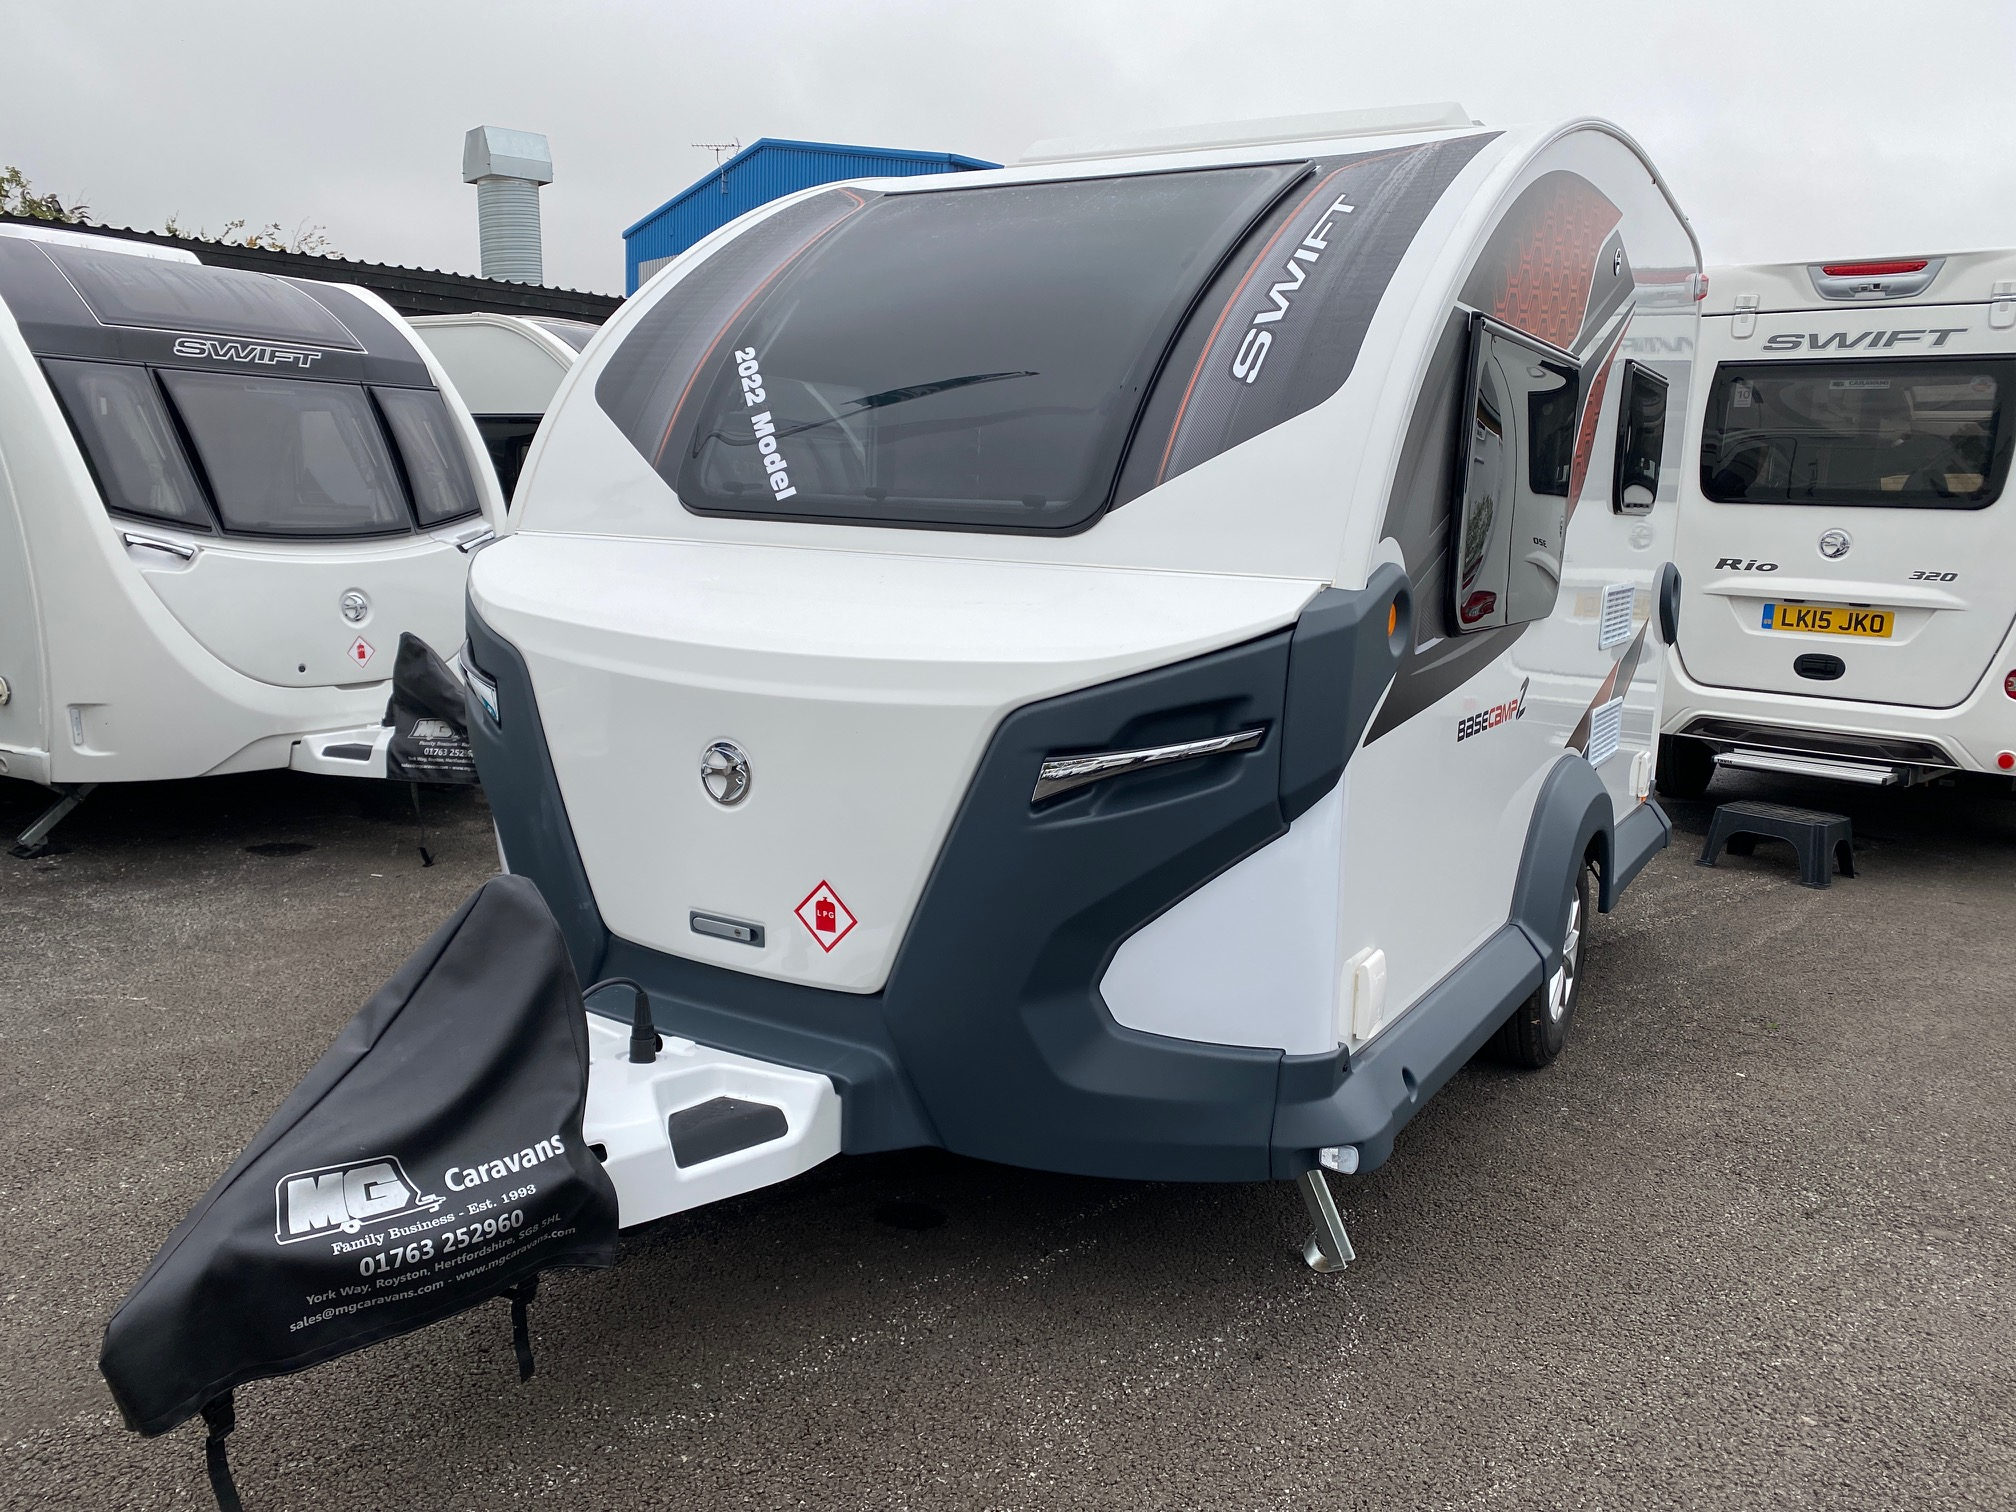 2022 Swift Basecamp 2 – available to view!